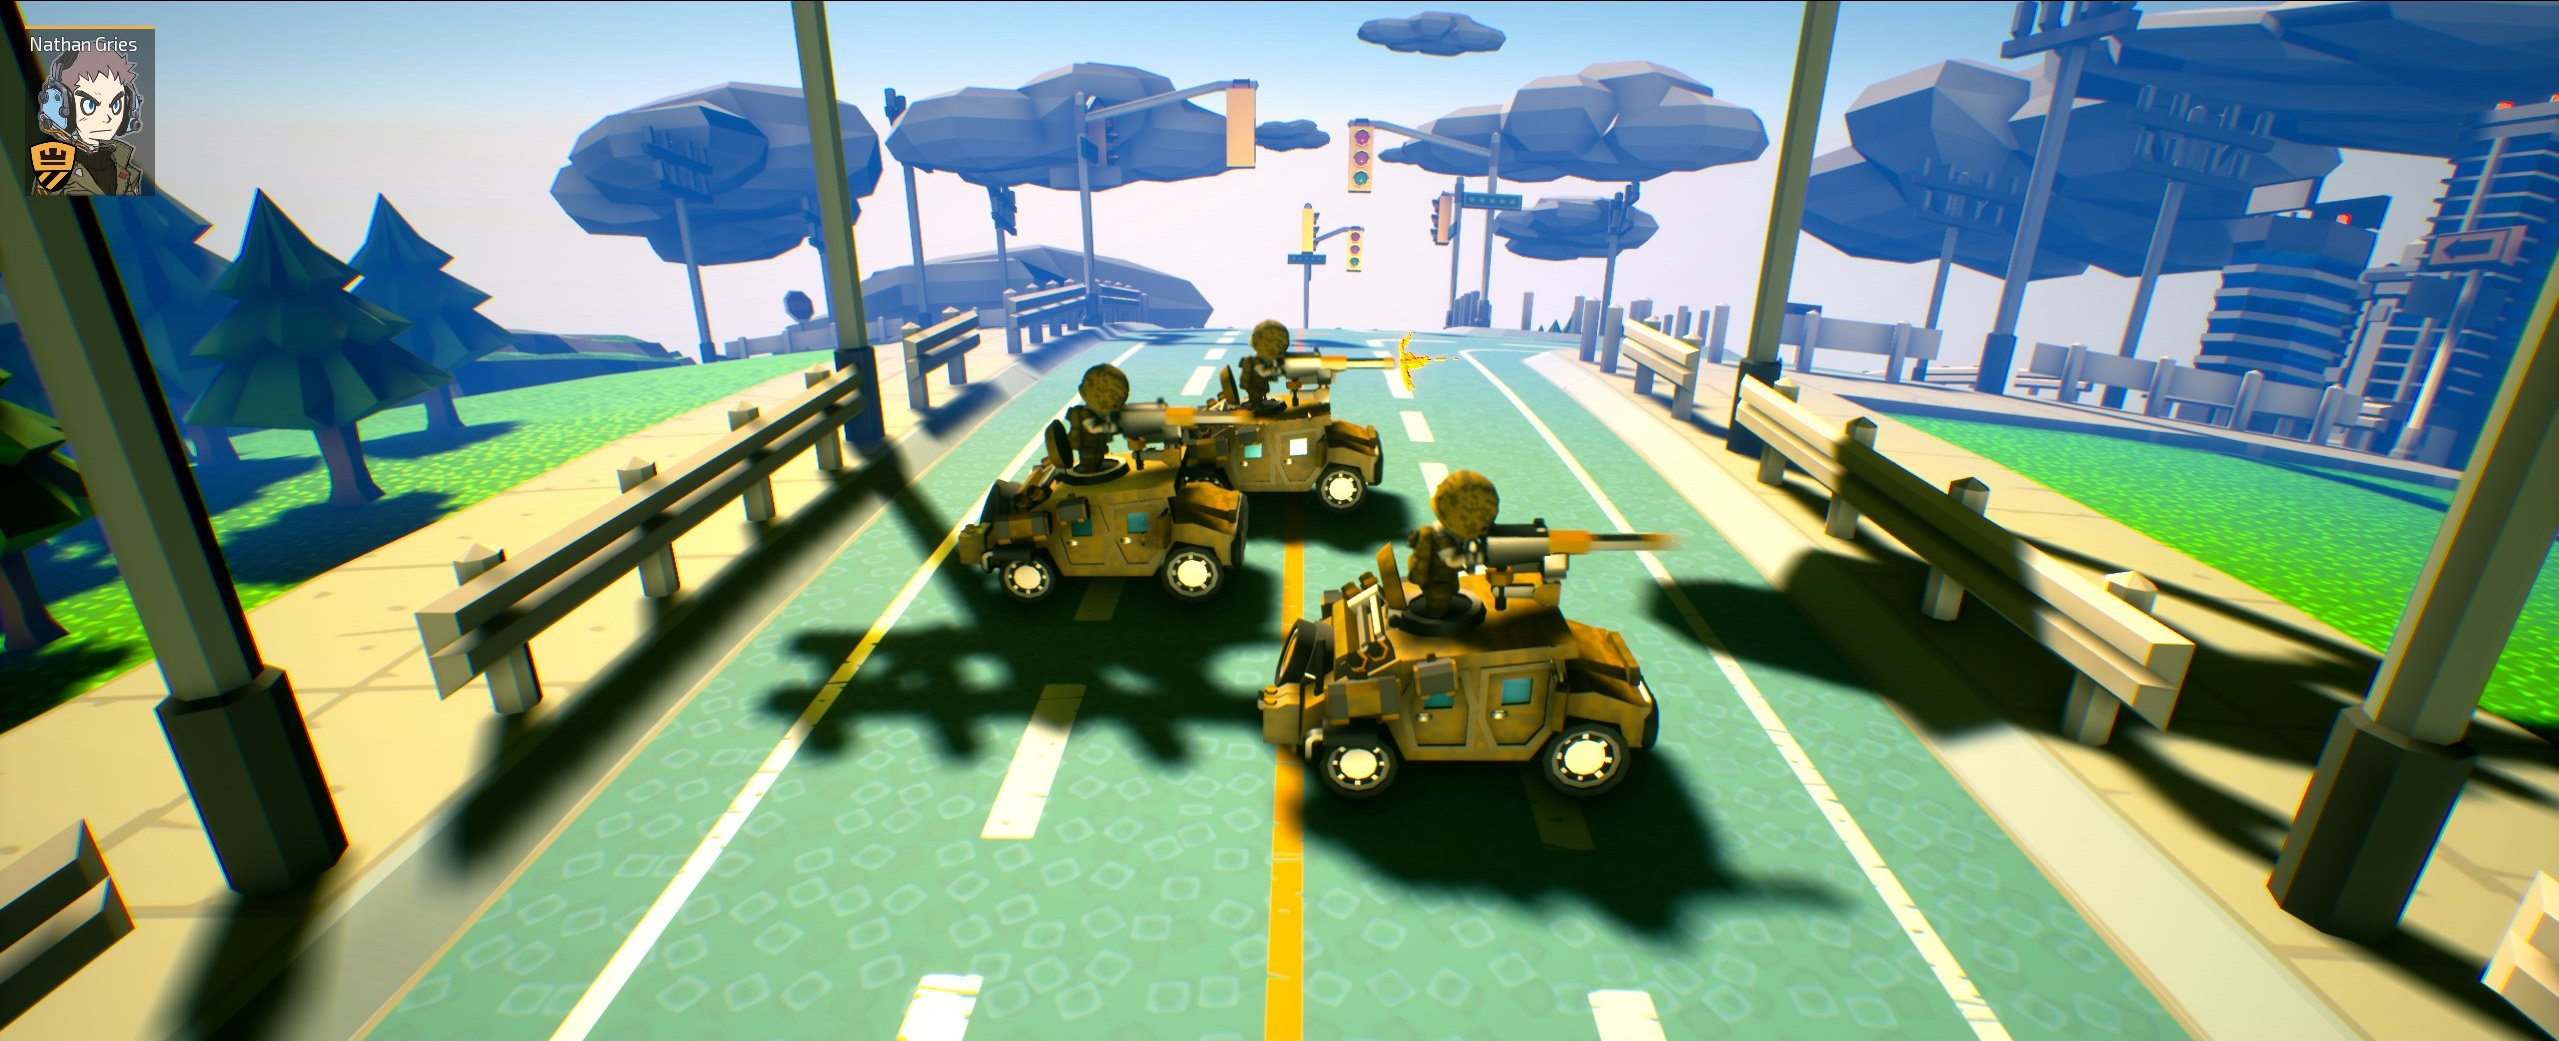 Another look at the Advance Wars-inspired Tiny Metal screenshot